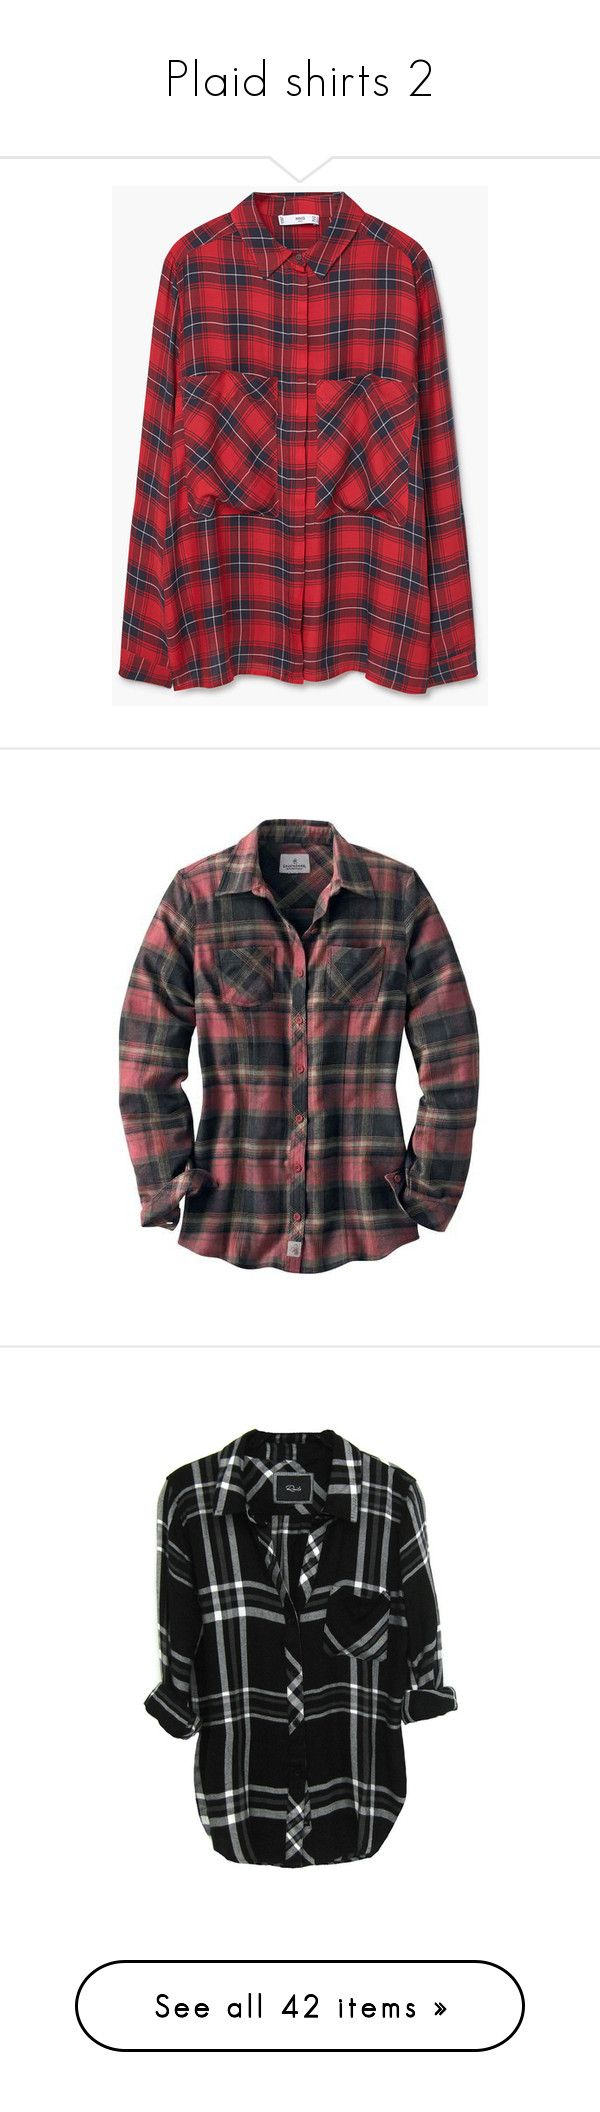 """Plaid shirts 2"" by chell-p ❤ liked on Polyvore featuring plaid, shirts, tops, mango, checkerboard shirt, red long sleeve top, long sleeve shirts, long-sleeve shirt, long sleeve collared shirt and flannel"